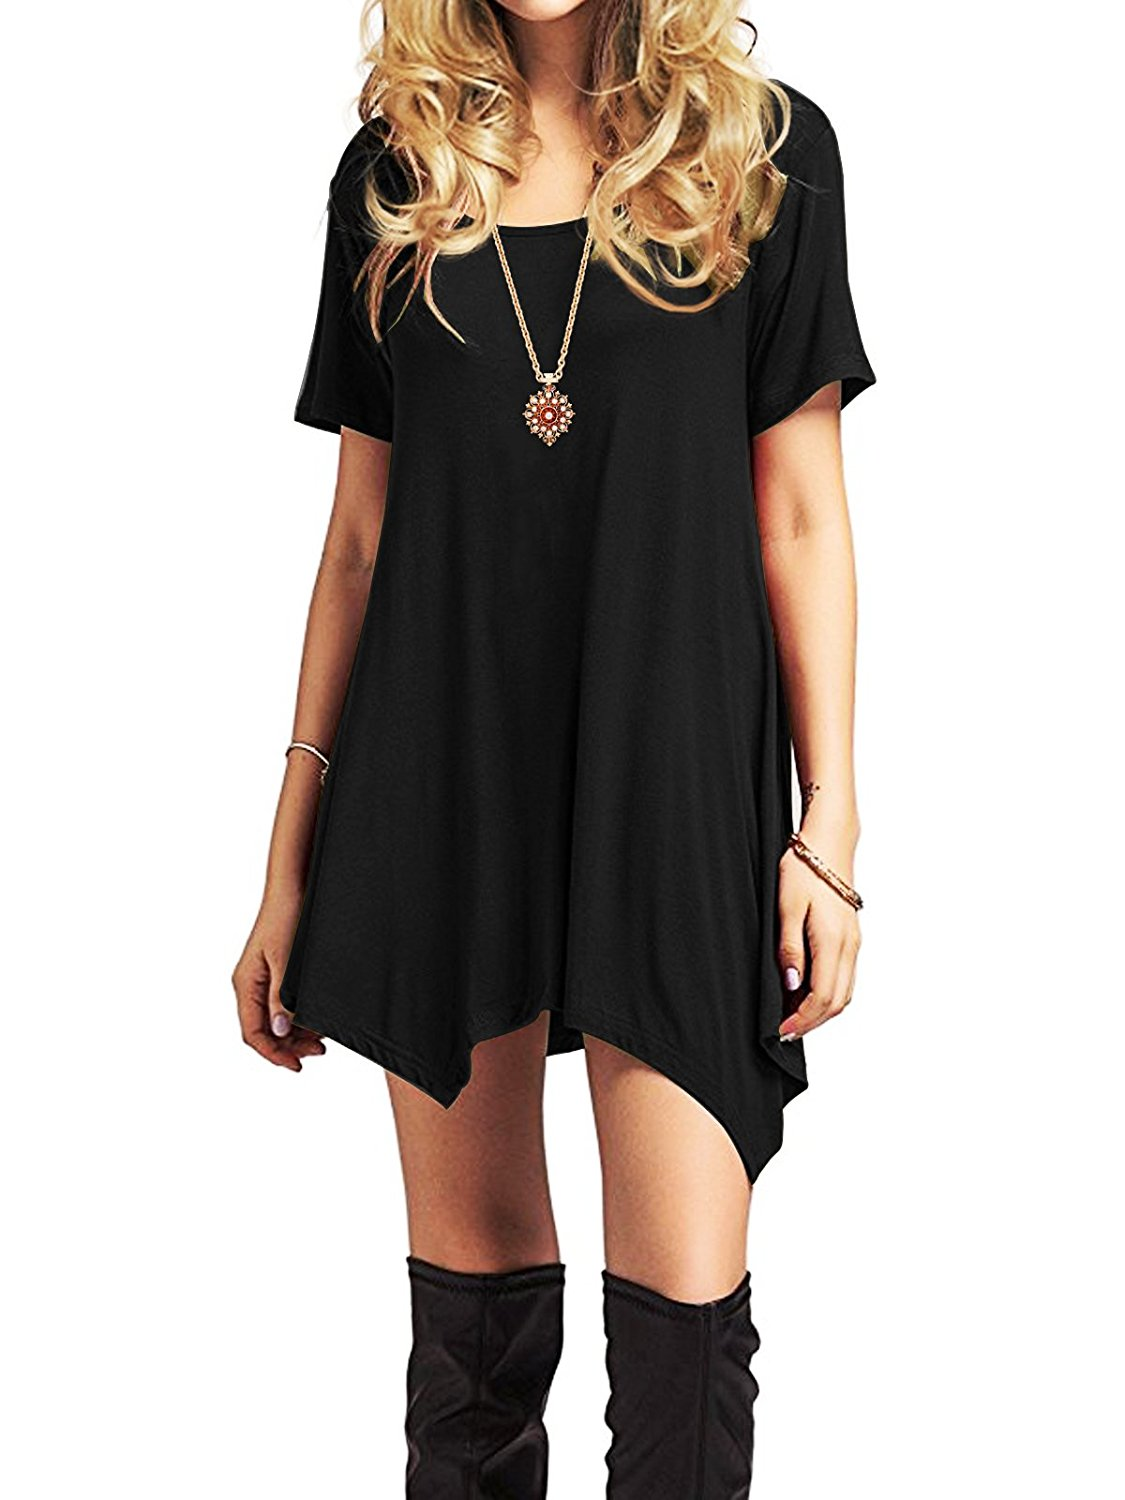 Goodfans Women Vintage Short Sleeve Solid Bow Pullover Tunic Swing Maxi Dress